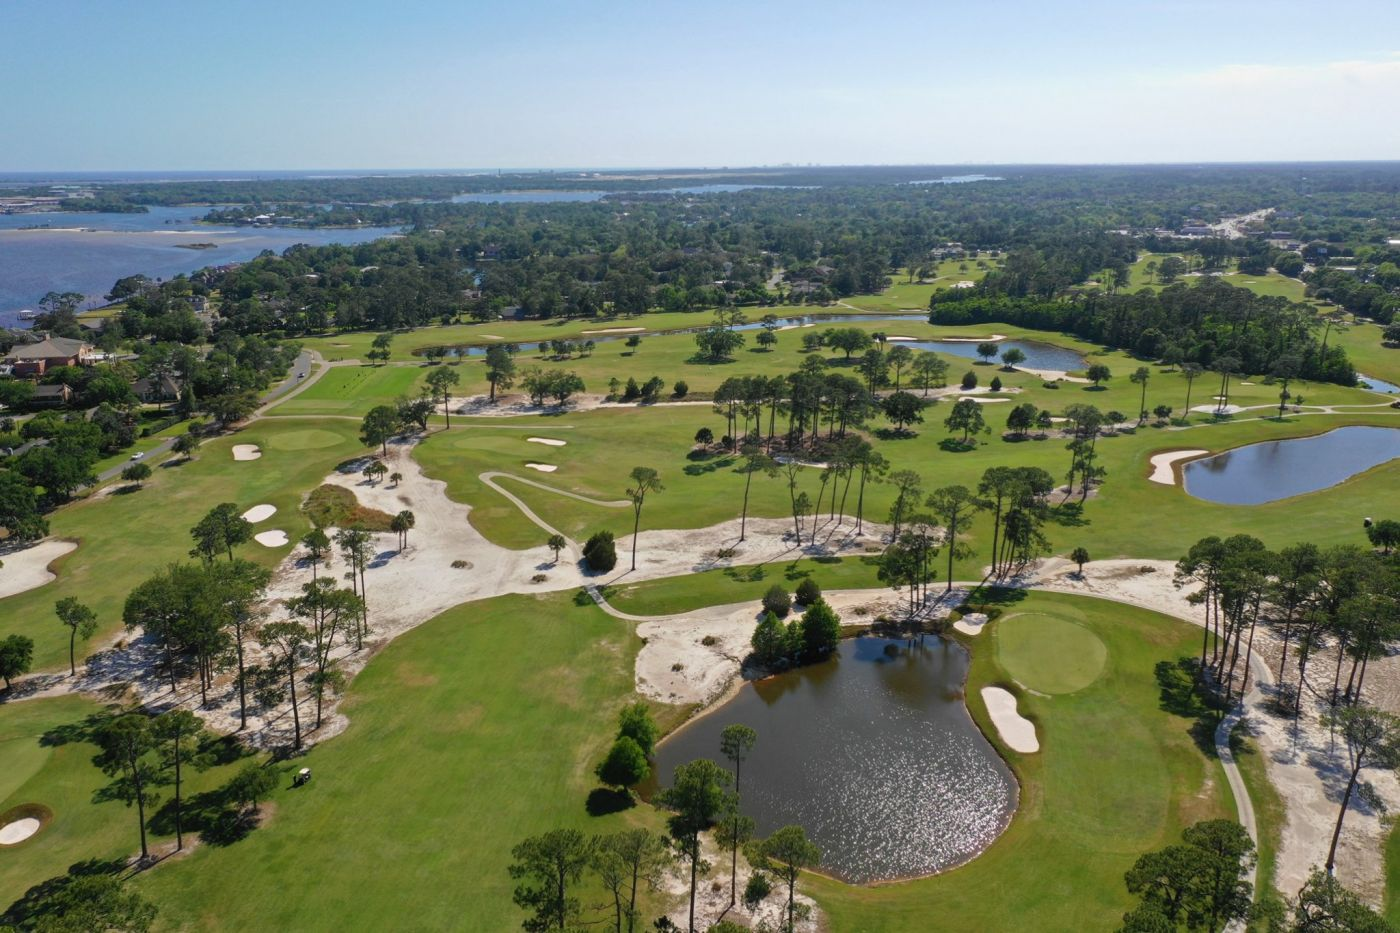 Pensacola Country Club - where the ideas are sparked on Friday afternoons